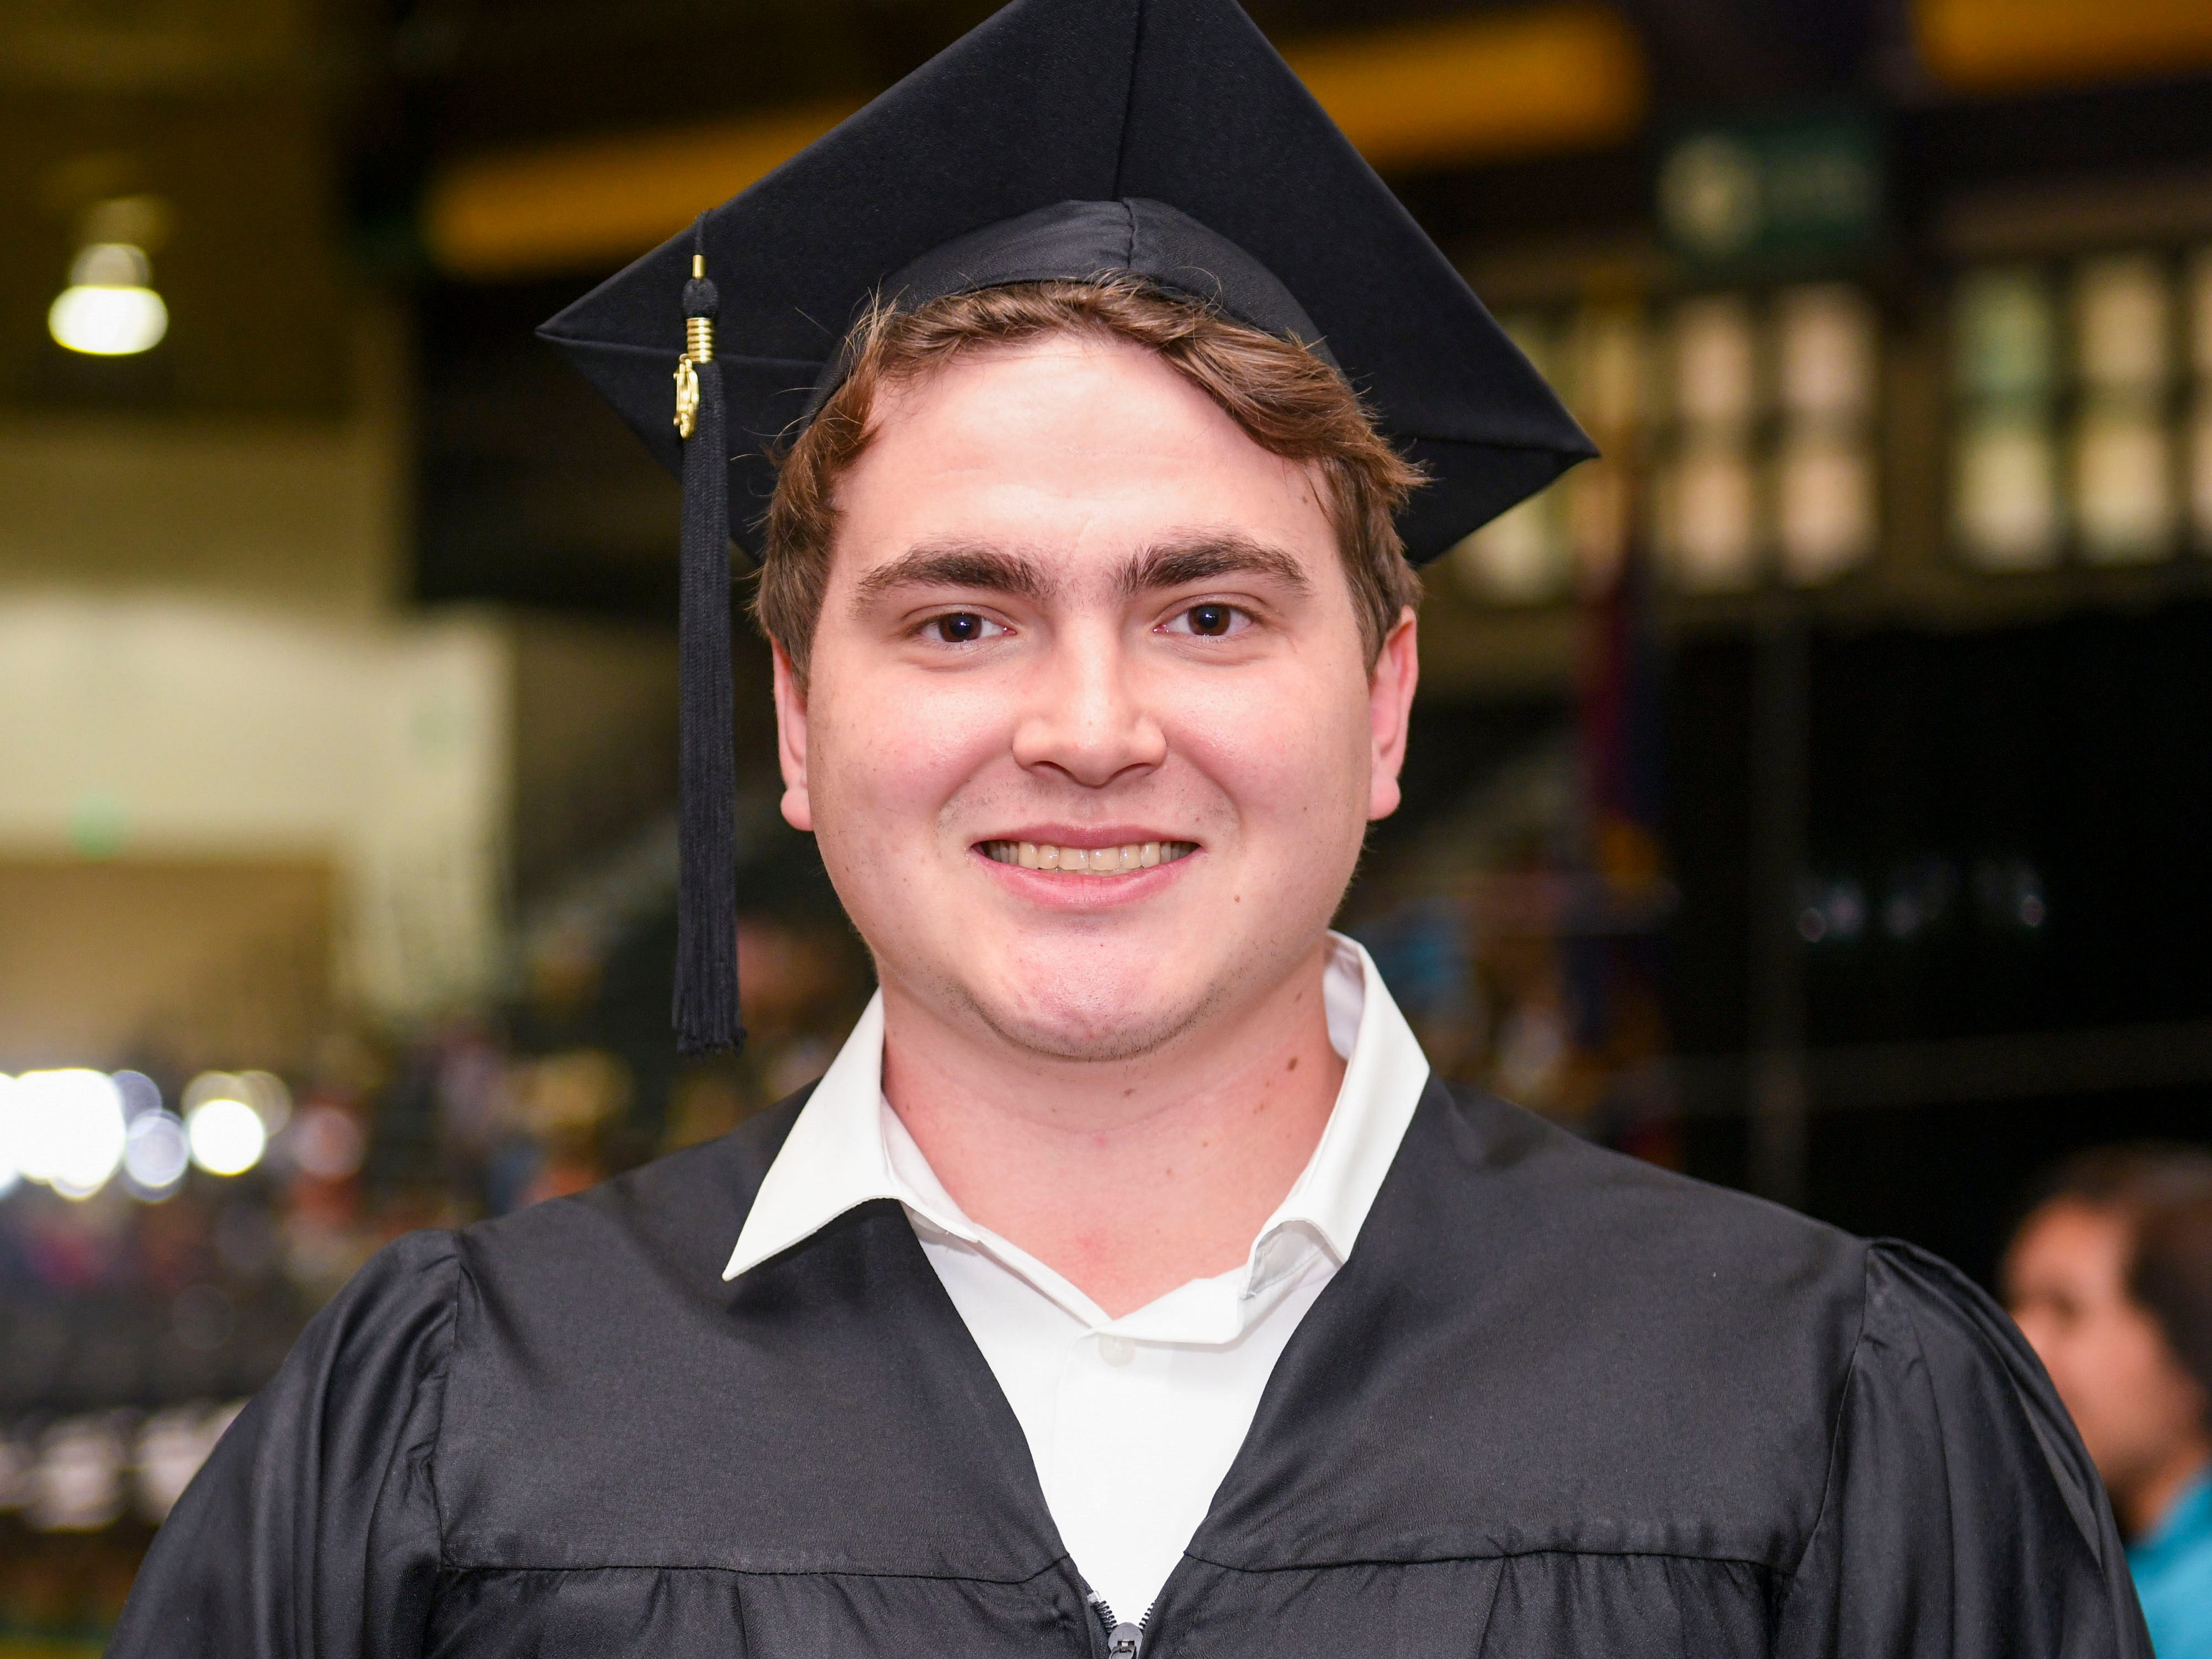 Ryan Boyd was recognized as Guam Community College's distinguished graduate during the institution's commencement exercise at the University of Guam in Mangilao on Friday, May 10, 2019. The college conferred a total of 435 degrees, certificates, and/or diplomas to 357 graduate celebrated at the ceremony, attended by hundreds of family members, friends and other well wishers.